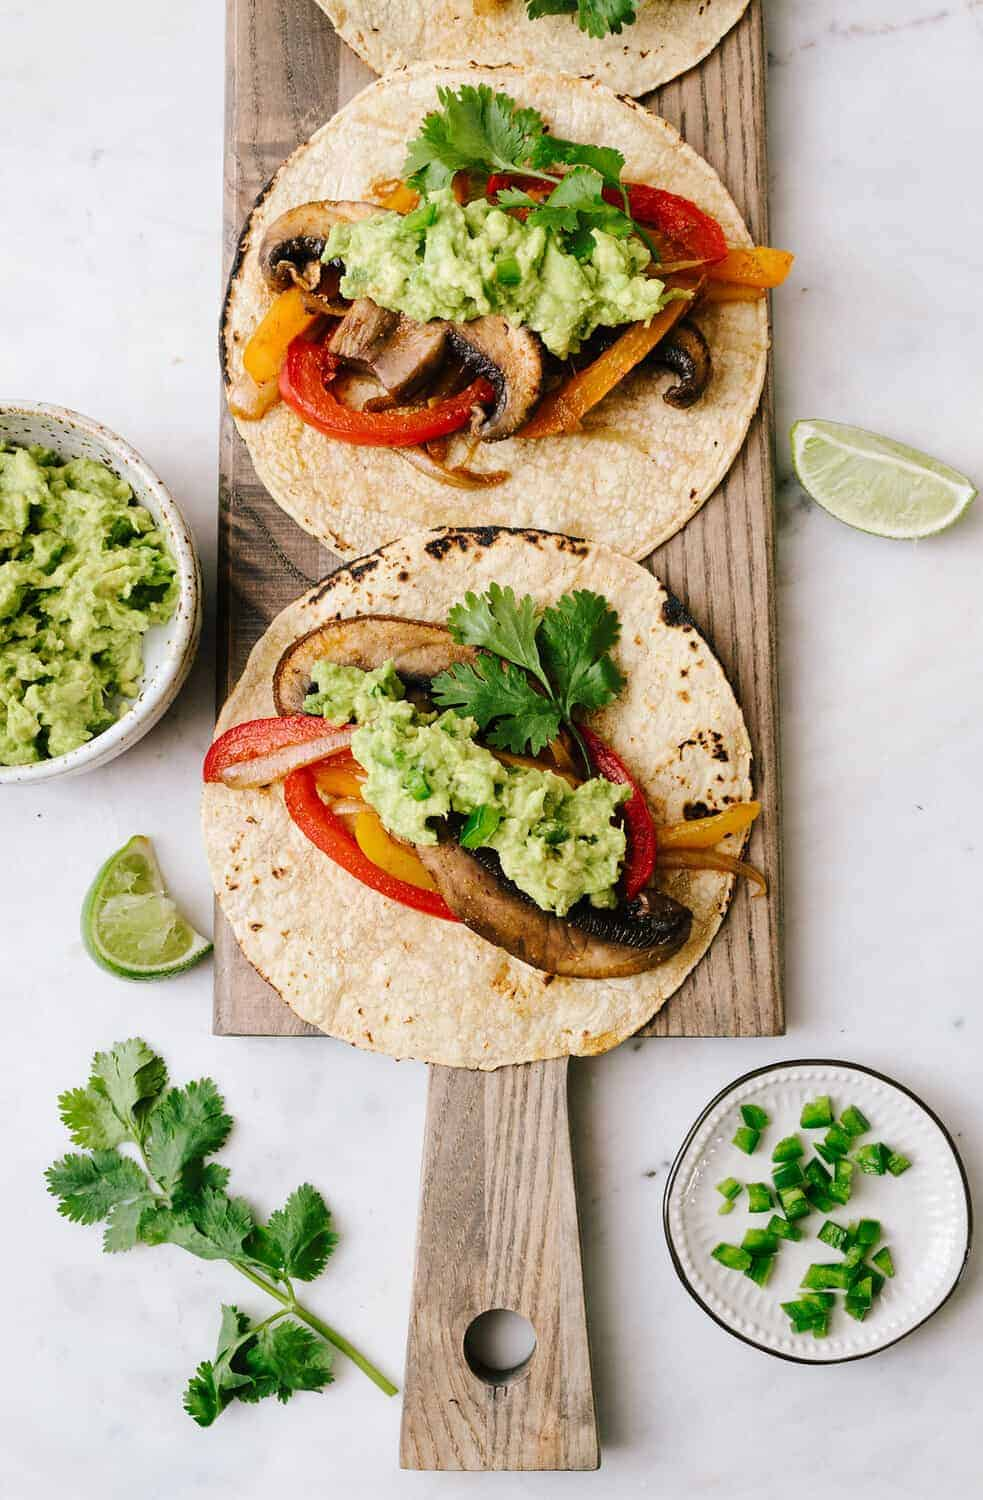 top down view of easy portobello mushroom fajitas topped with jalapeno guacamole on corn tortillas on a wooden serving board.